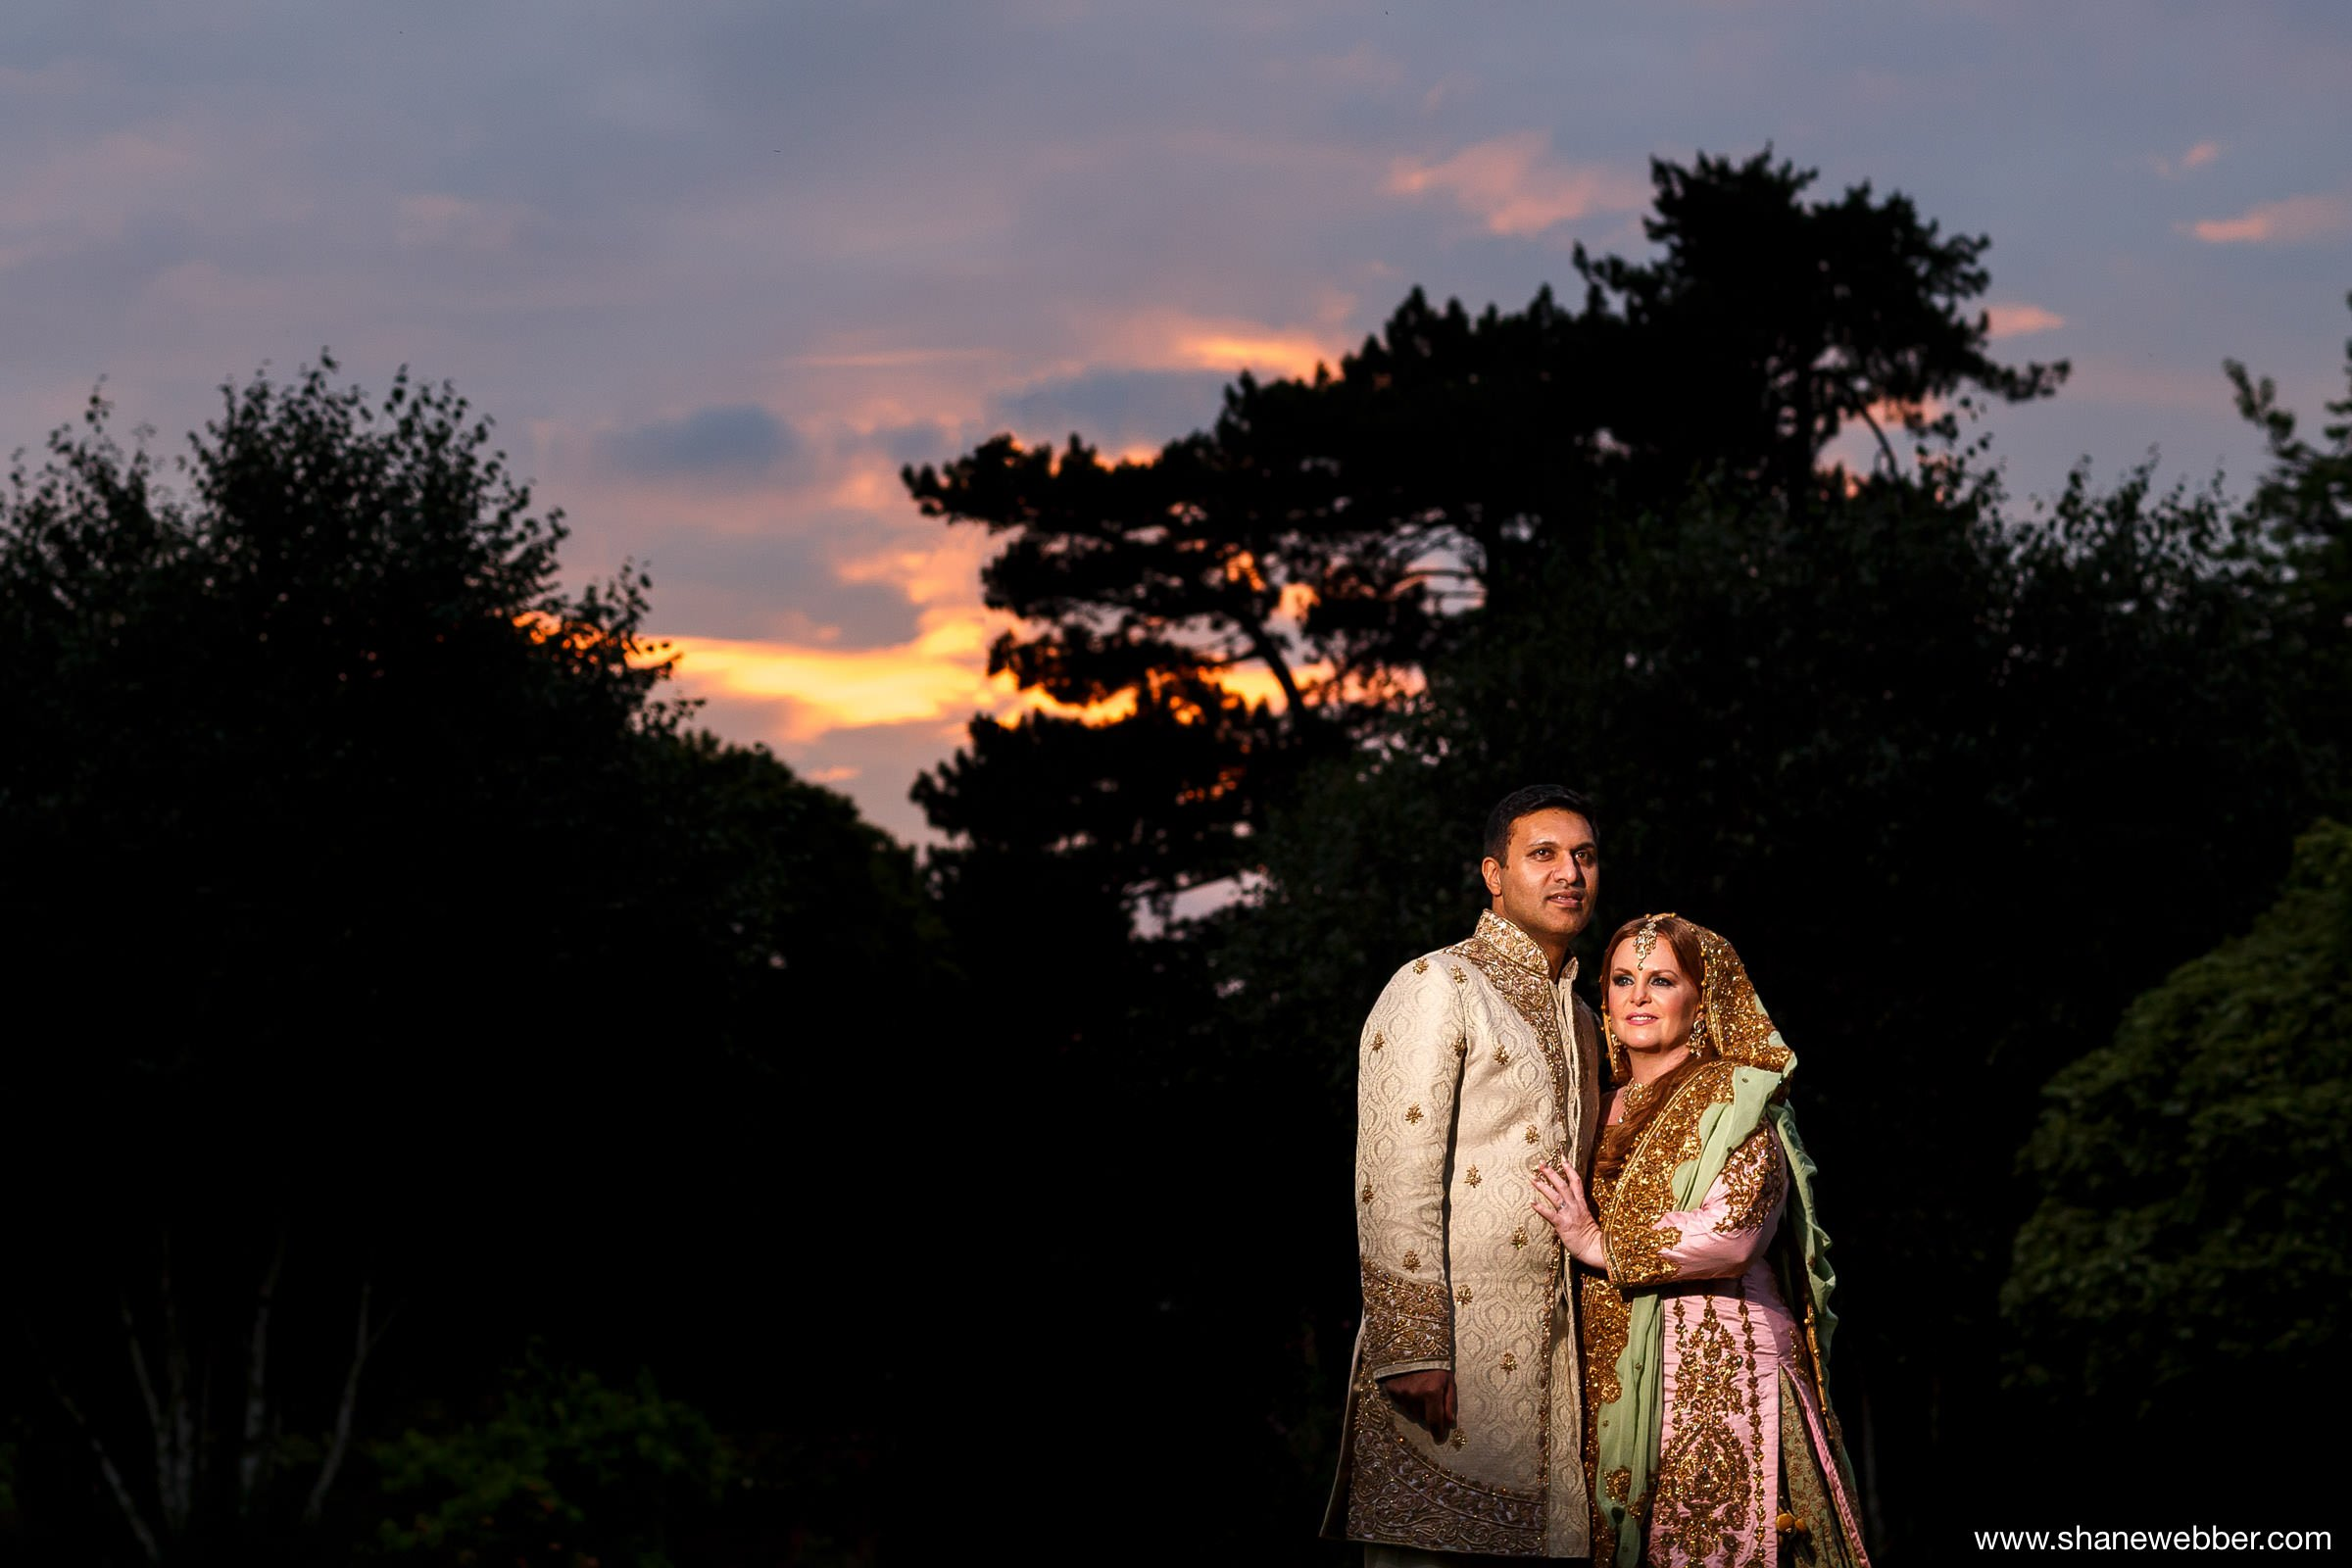 Sunset wedding photography at Capesthorne Hall